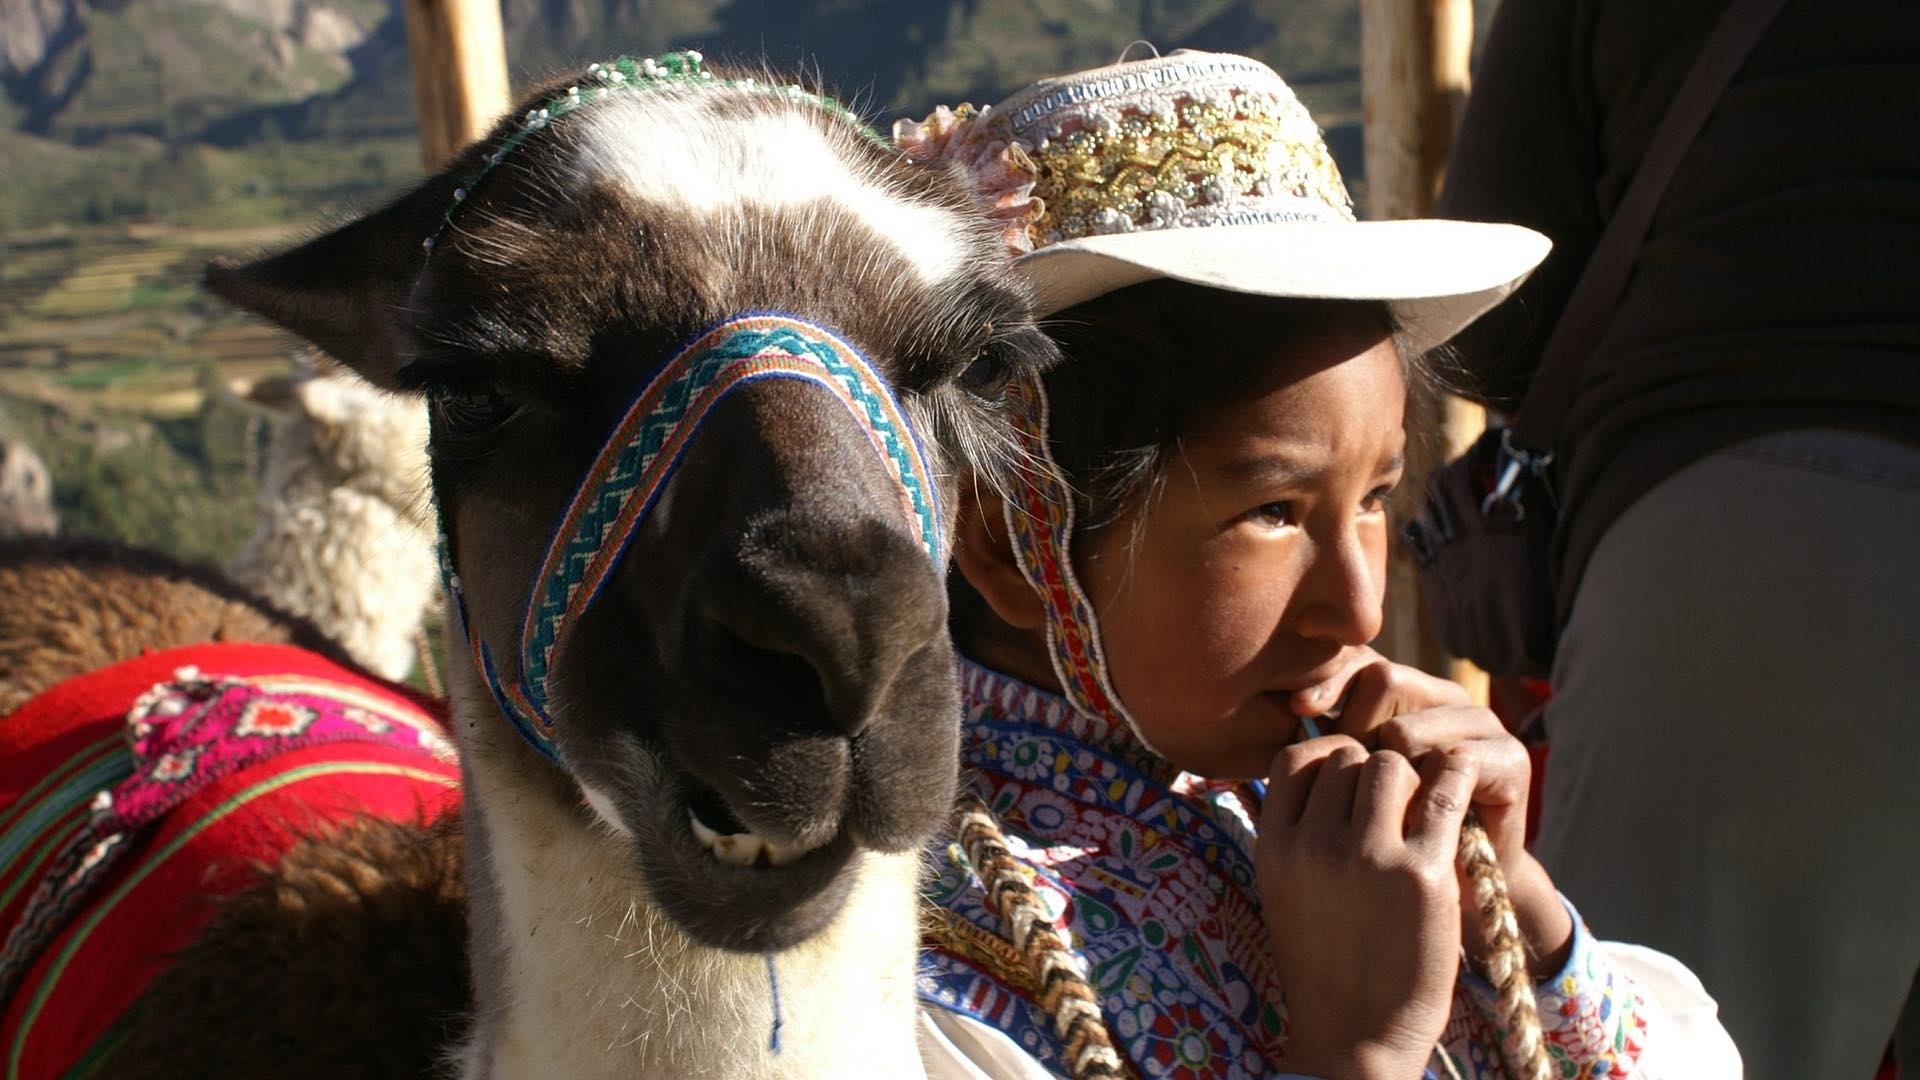 High in the Andes, alpacas often live among the artisans, they are pets and a source of livelihood, producing yarns for the finest apparel.